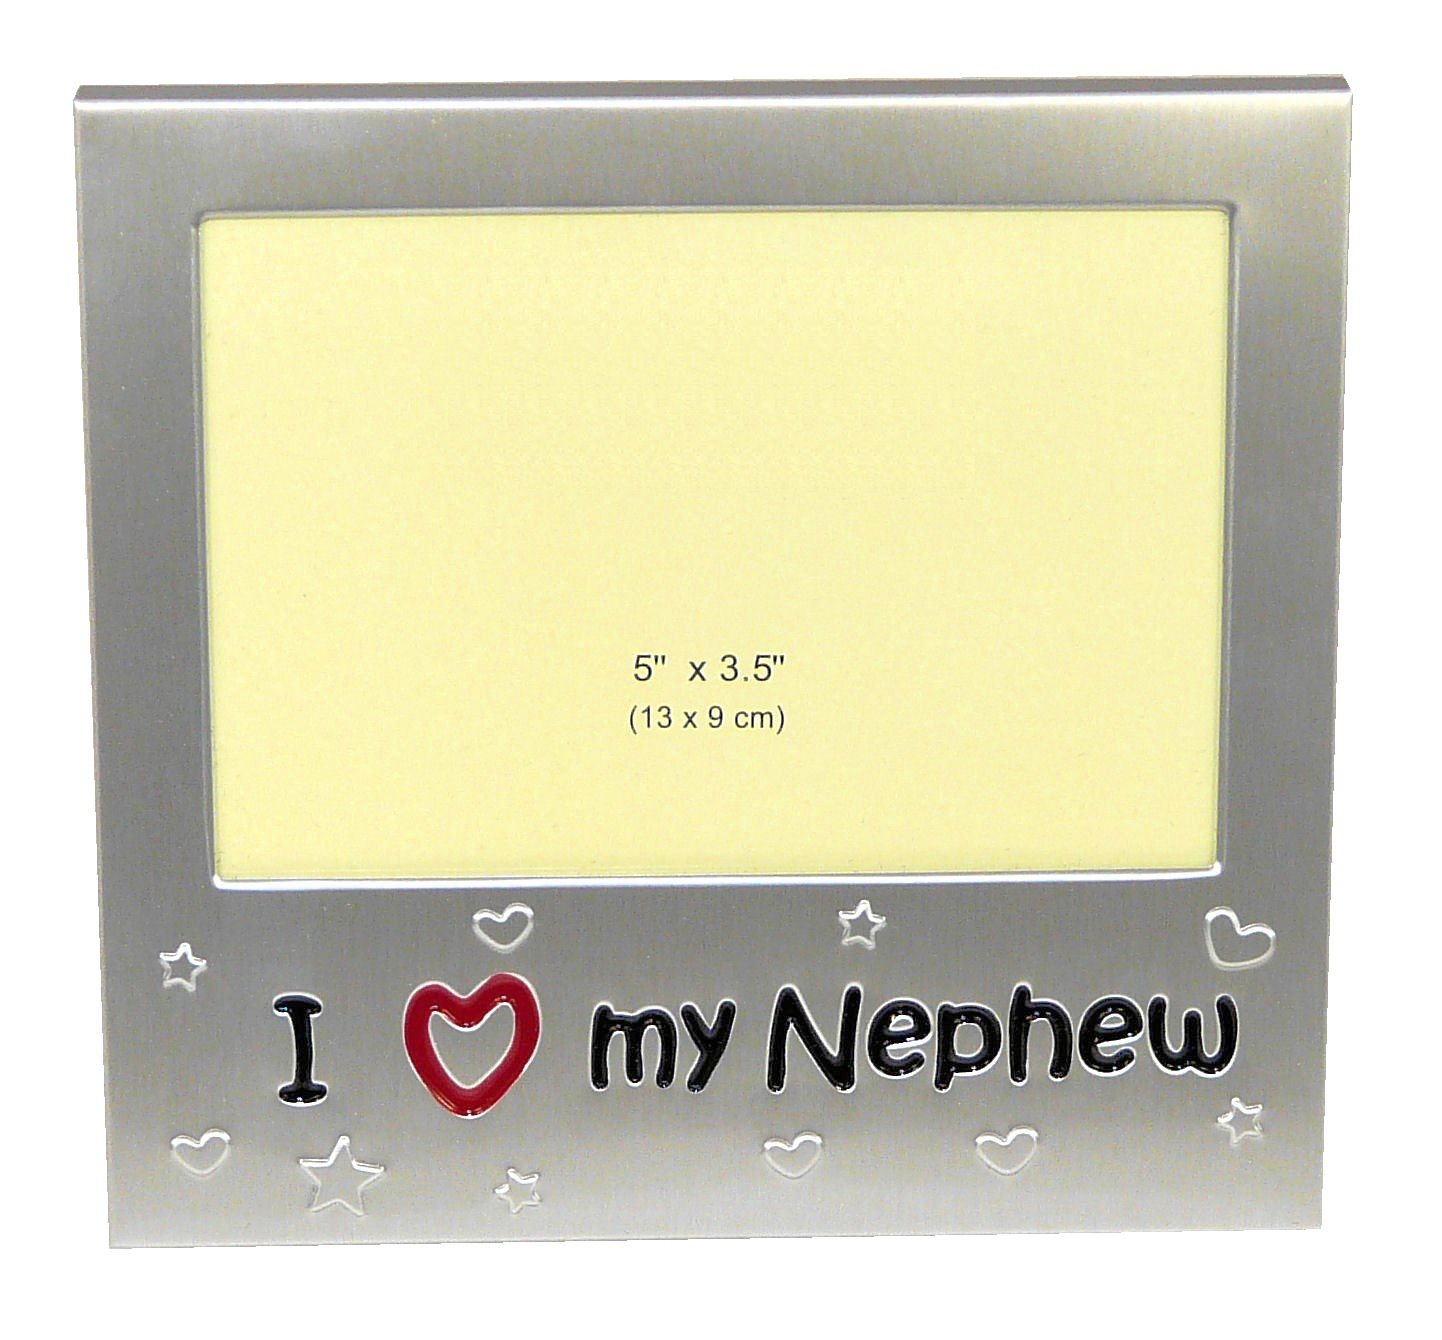 Wedding Gifts For Nephew : love my nephew photo picture frame gift 5 3 5 i love my nephew ...